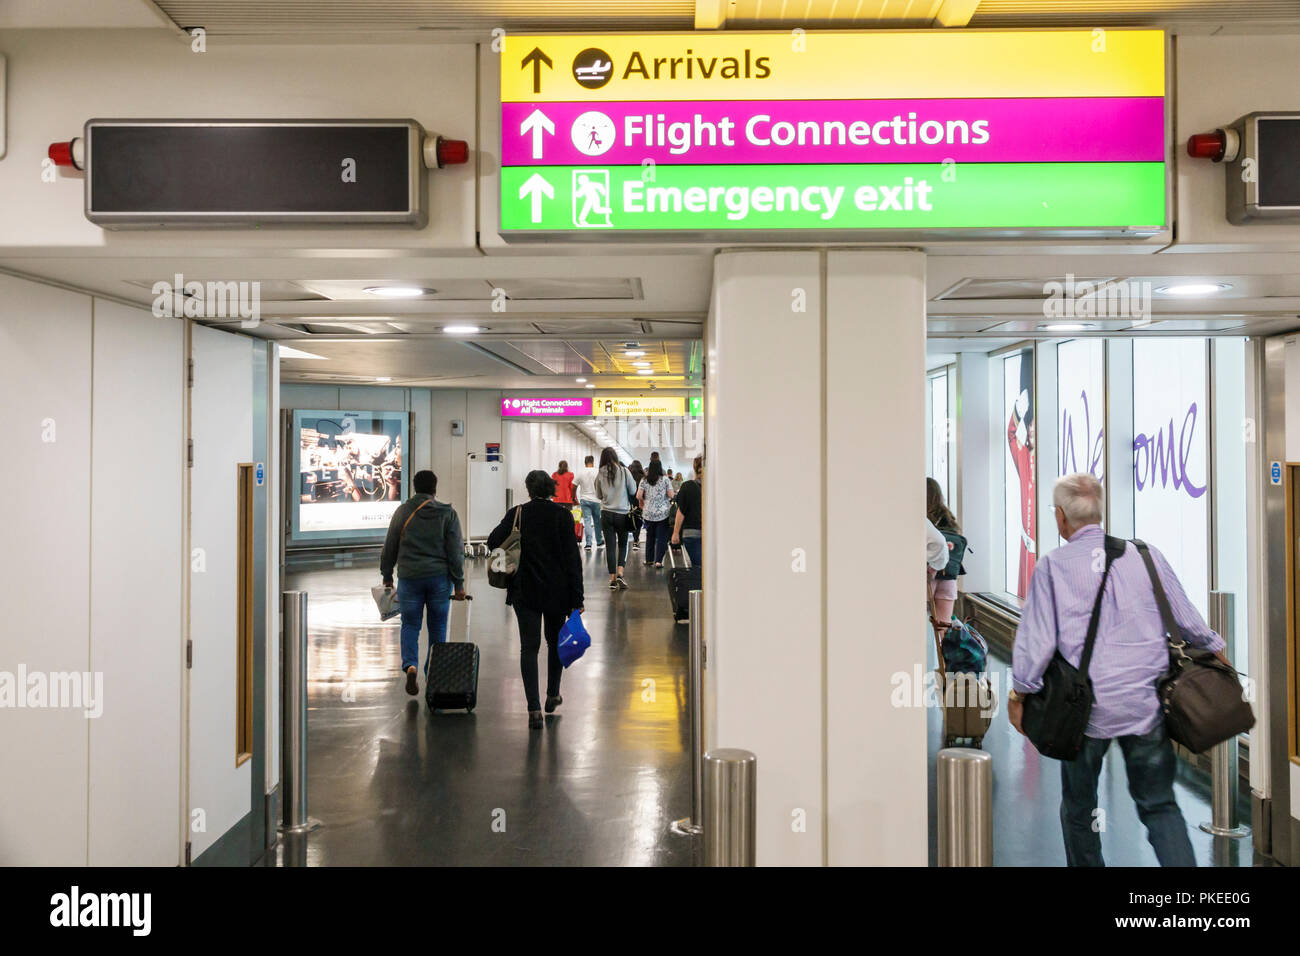 London England Great Britain United Kingdom Heathrow Airport LHR directions sign flight arrivals connections emergency exit man woman passenger - Stock Image